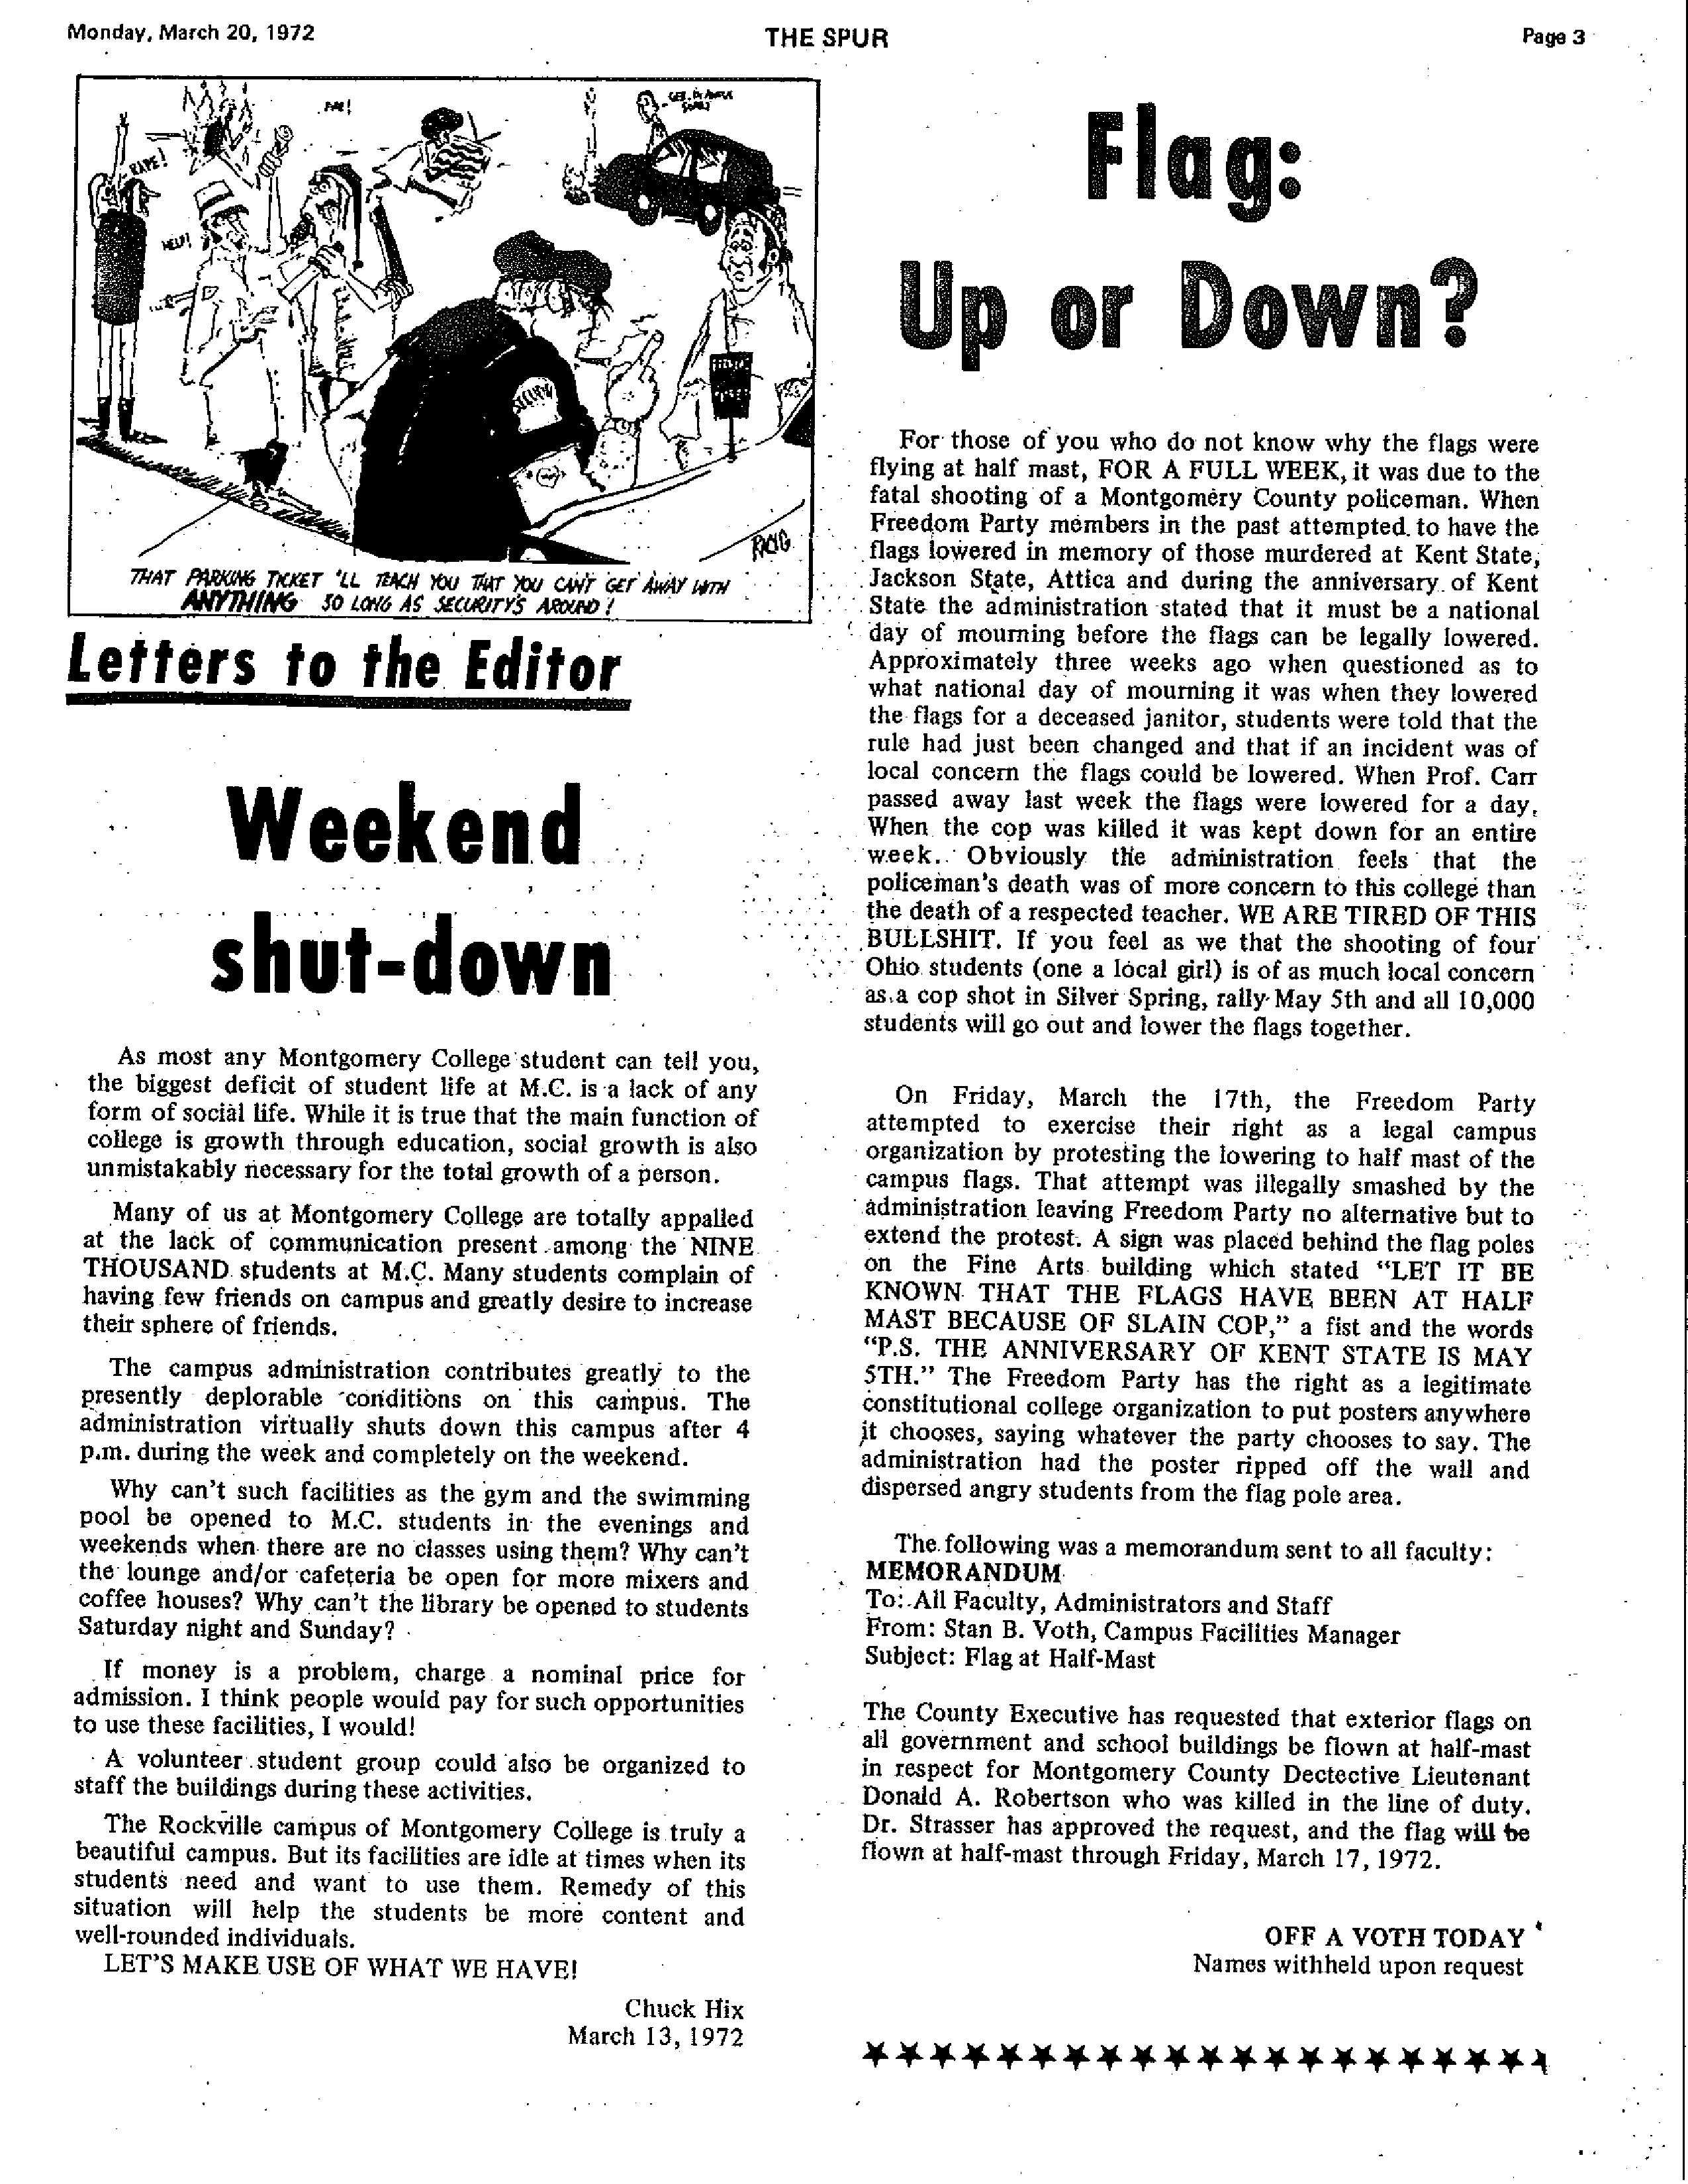 Throwback Thursday: Weekend shut-down–Letter to the Editor